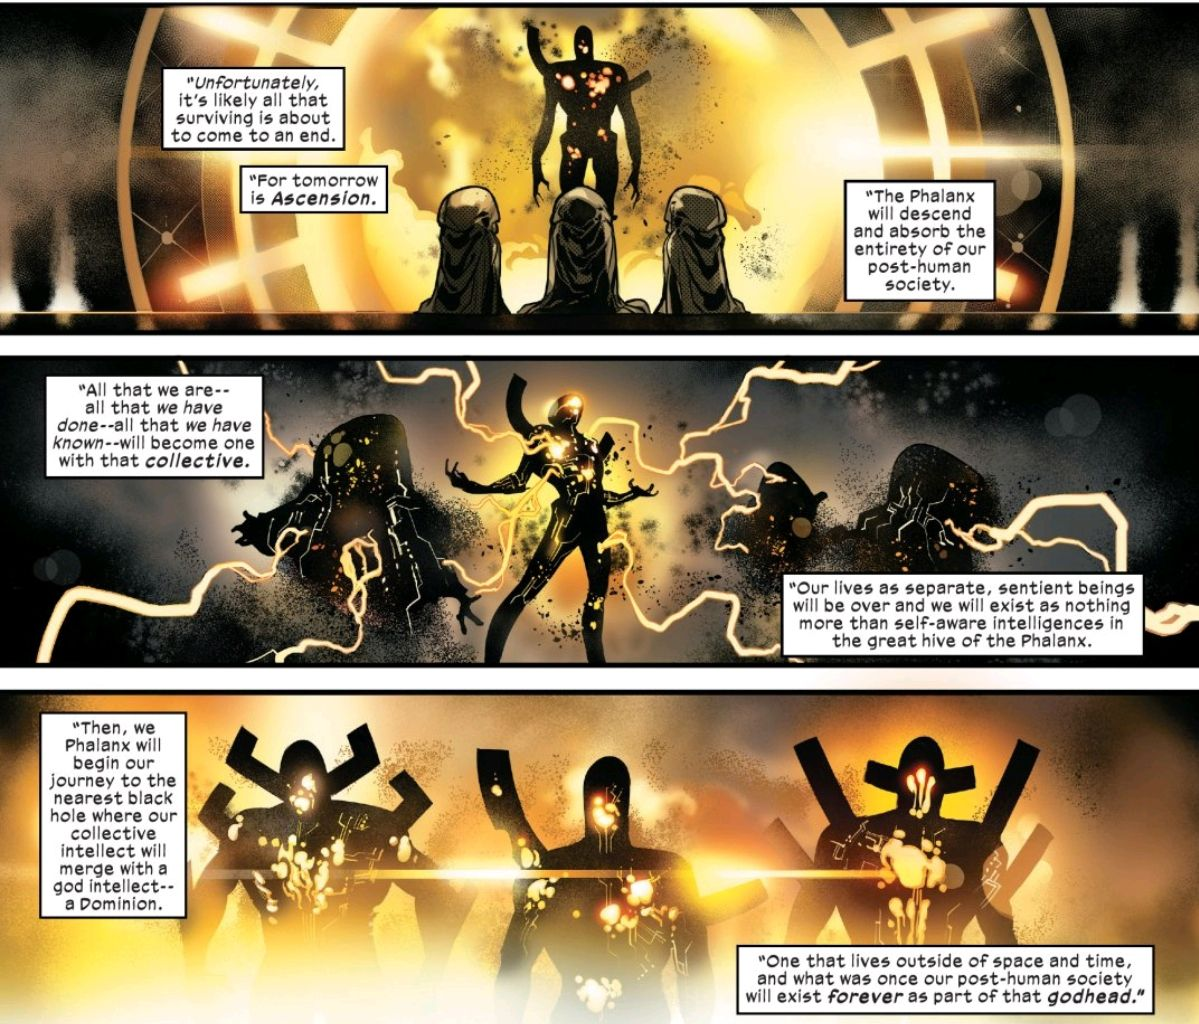 The Librarian explains that the Phalanx will absorb the consciousness of humanity, destroy all the matter of the planet Earth, and then journey to a black hole to merge with a Dominion intelligence, in Powers of X #6, Marvel Comics (2019).